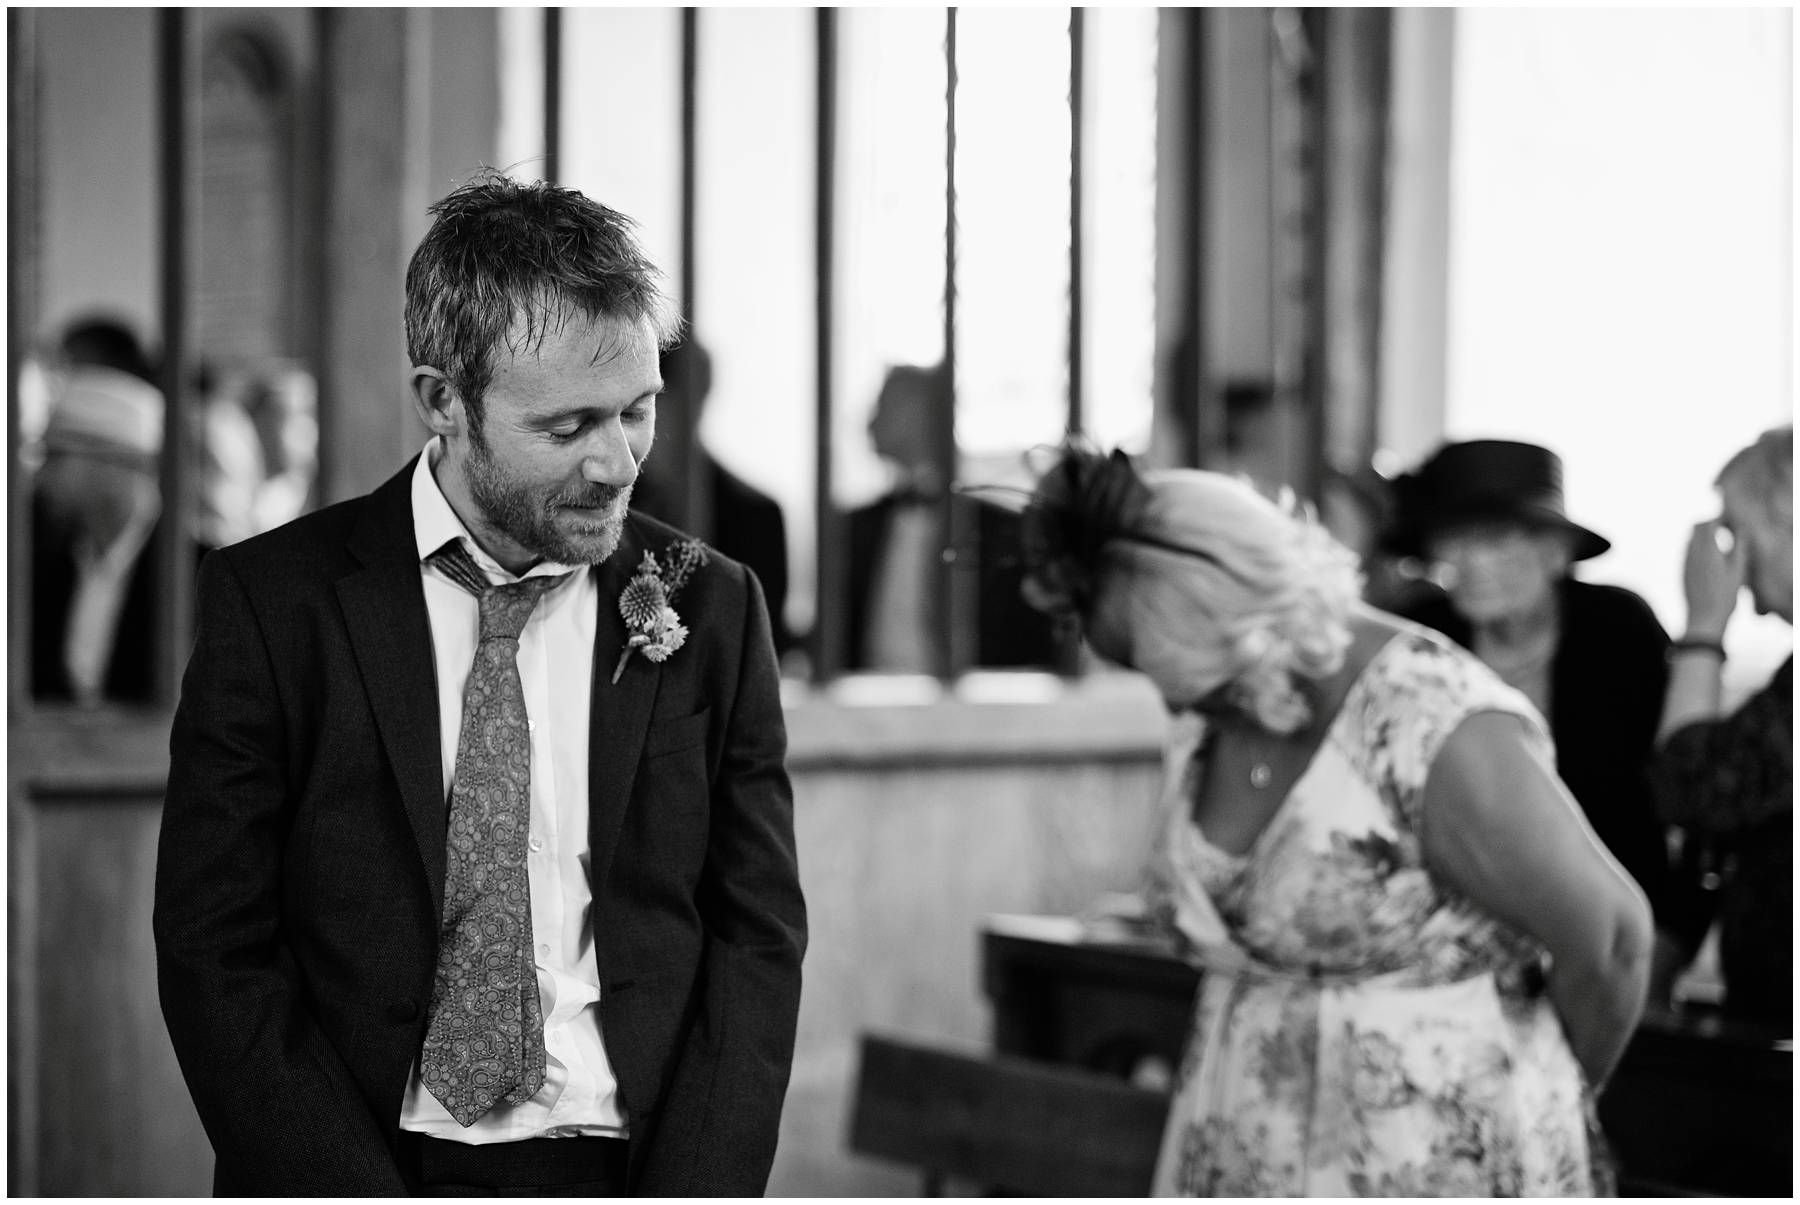 Nervous groom at church wedding in Essex